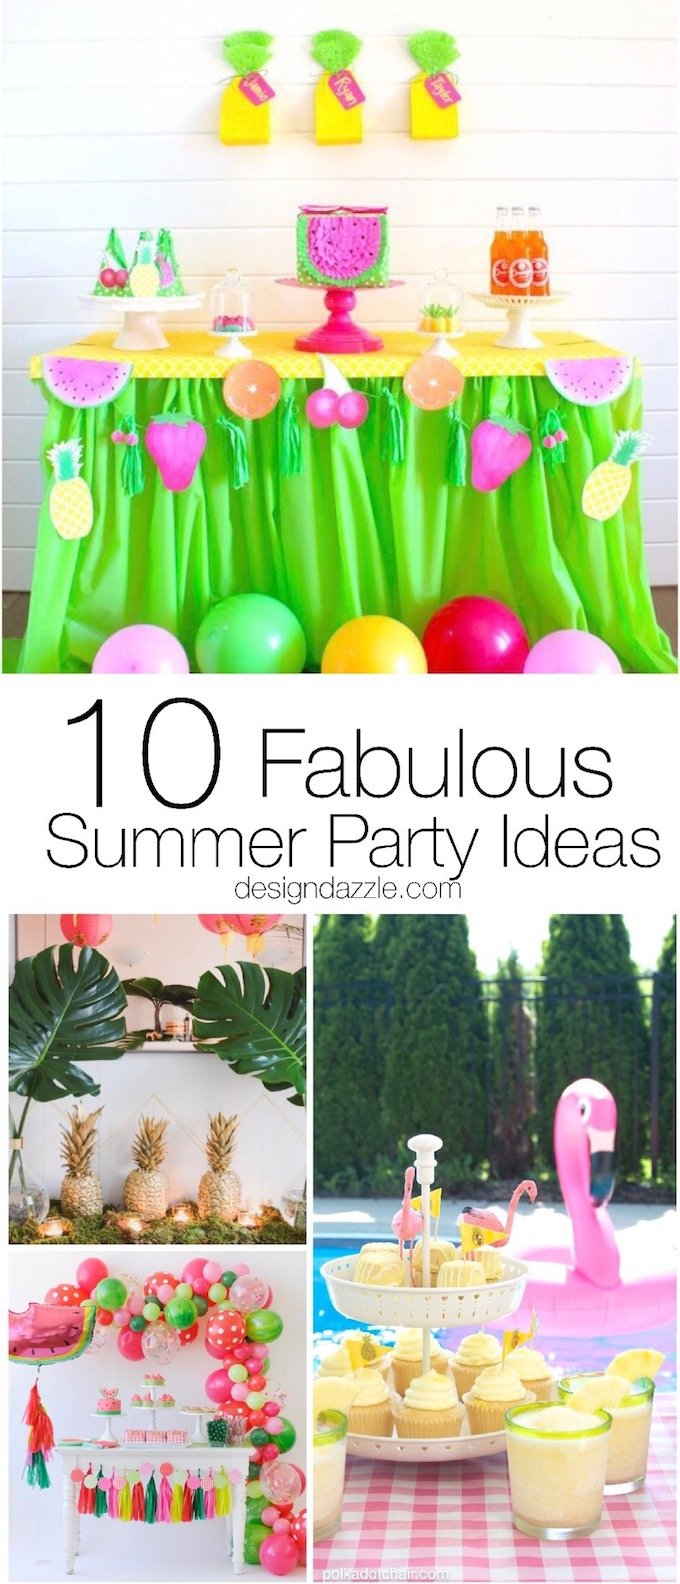 Whether it's a water party for the kids or a classic barbecue for the whole family, here are 10 ideas that will elevate your summer party to the next level! | Design Dazzle